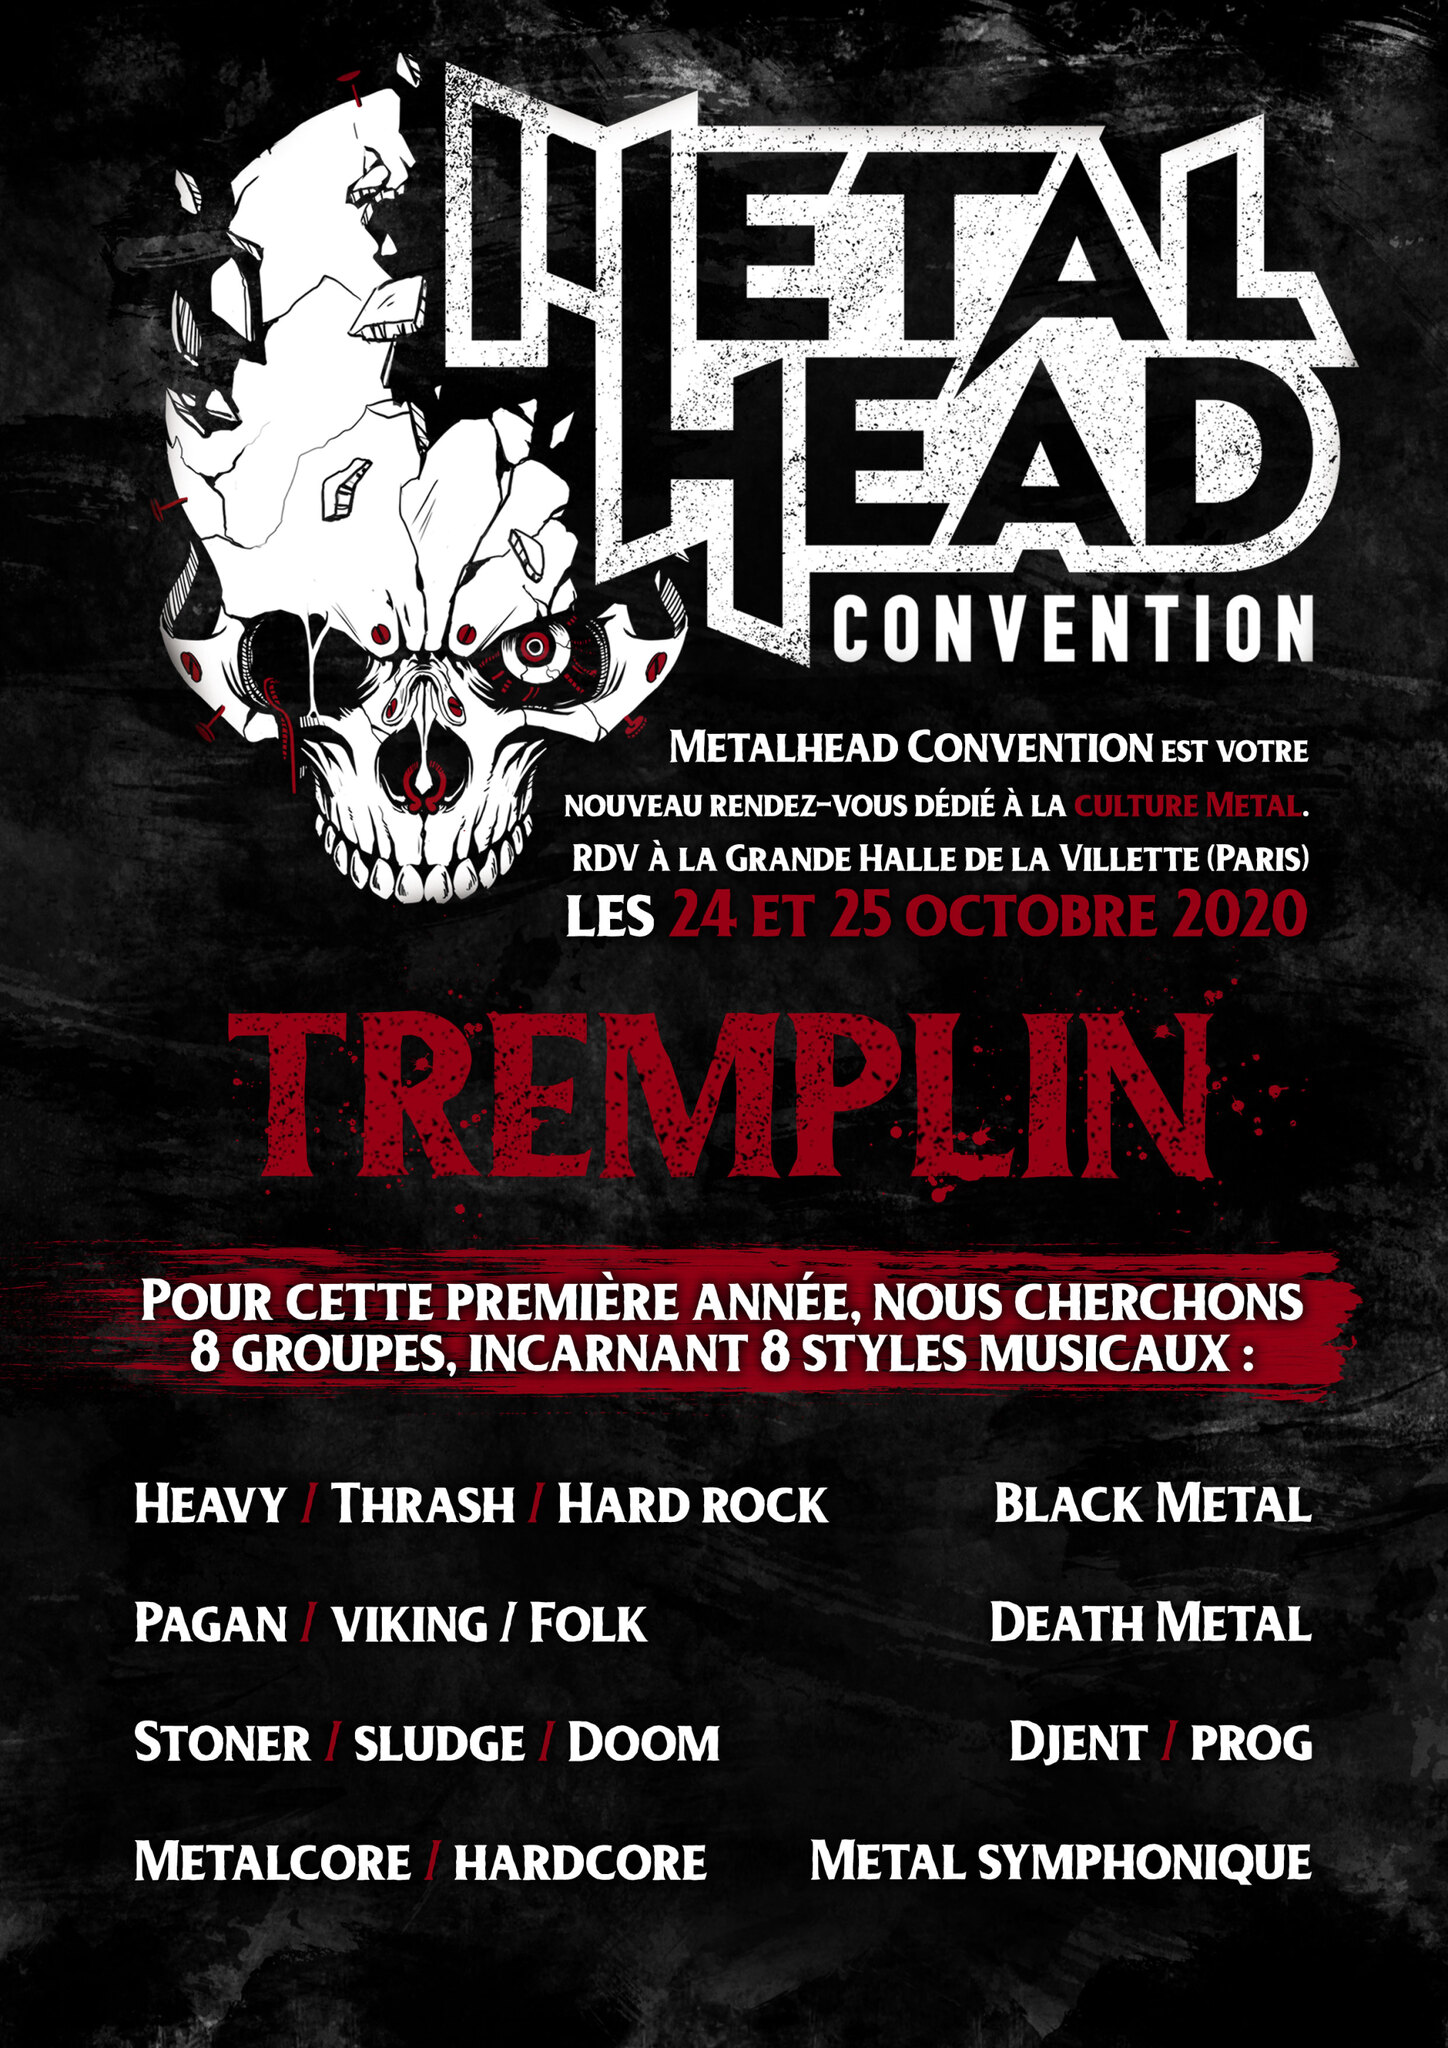 Tremplin Metalhead Convention